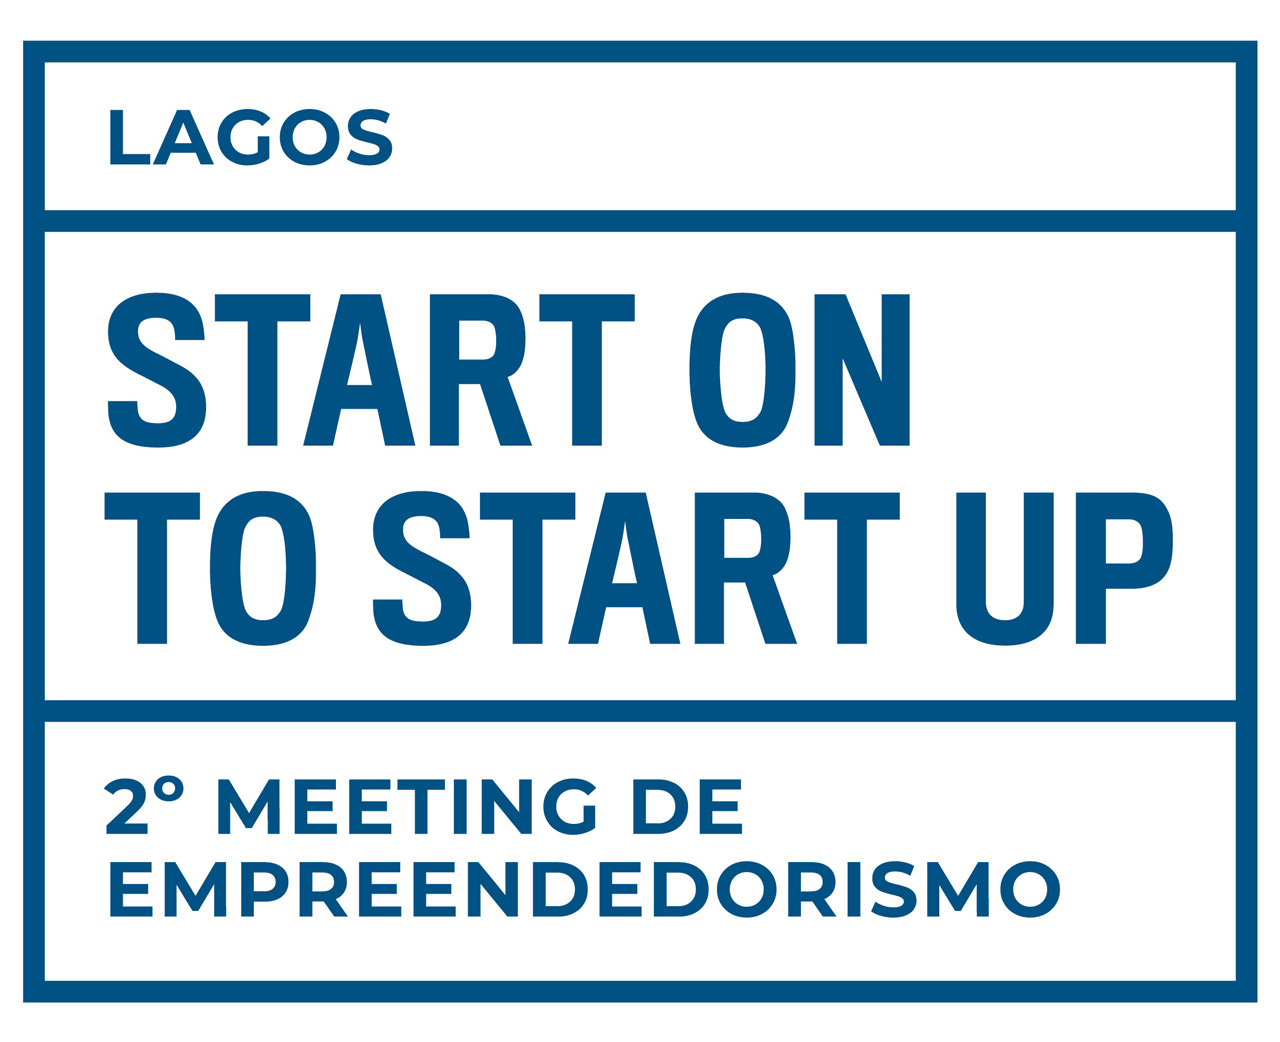 Lagos Start On to Start Up: Quais as novas tendências e desafios do empreendedorismo?